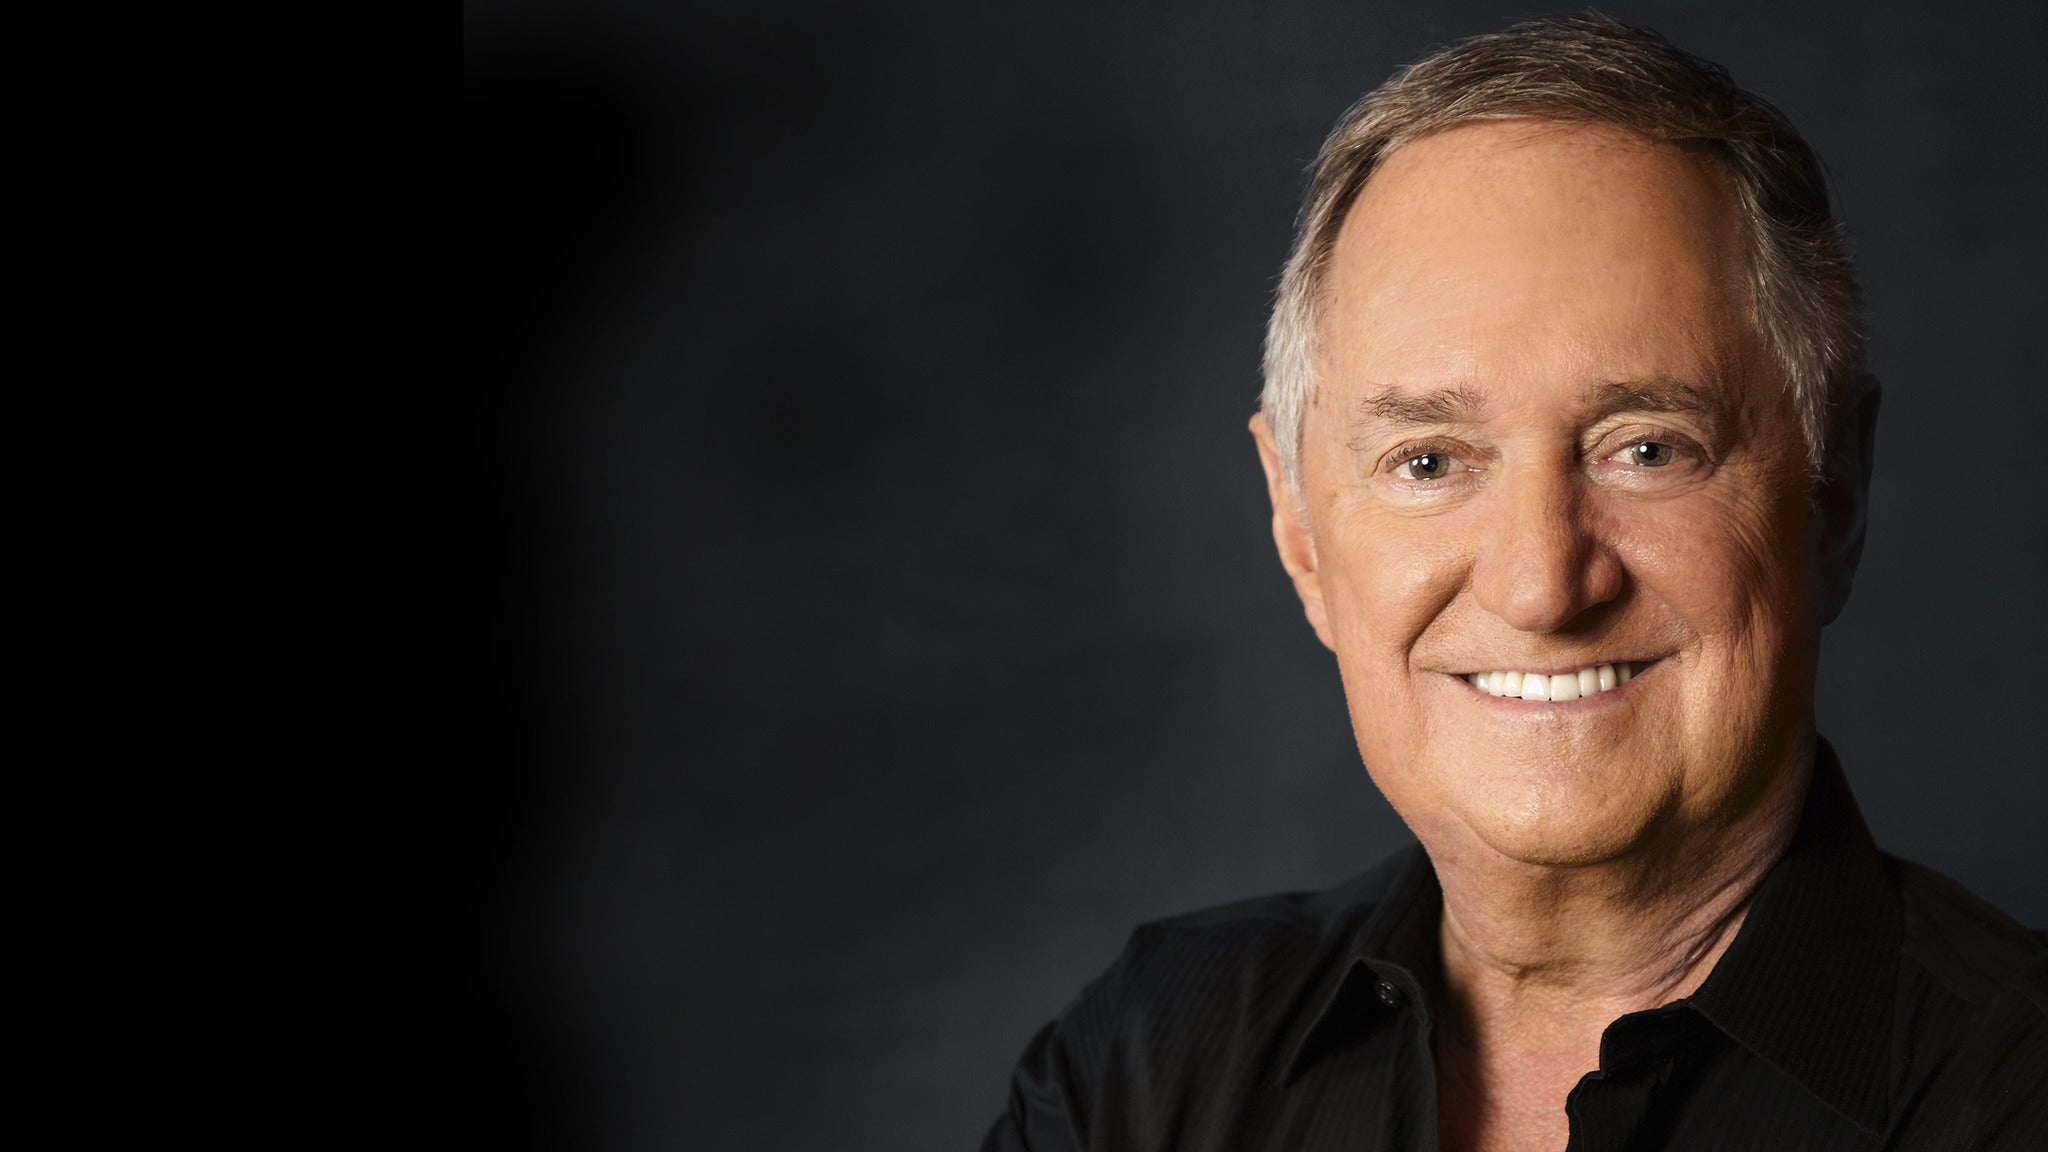 Neil Sedaka at Seminole Casino Coconut Creek